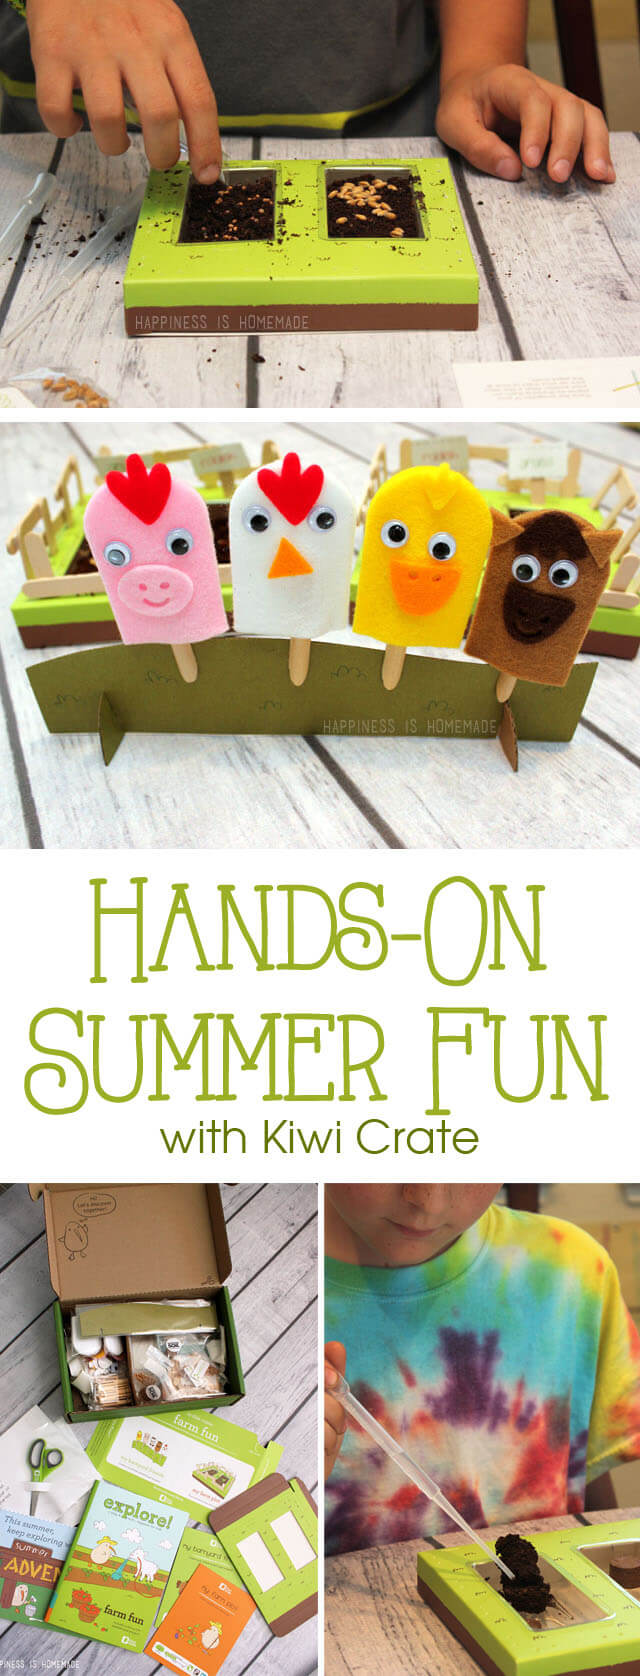 Hands On Summer Fun with Kiwi Crate